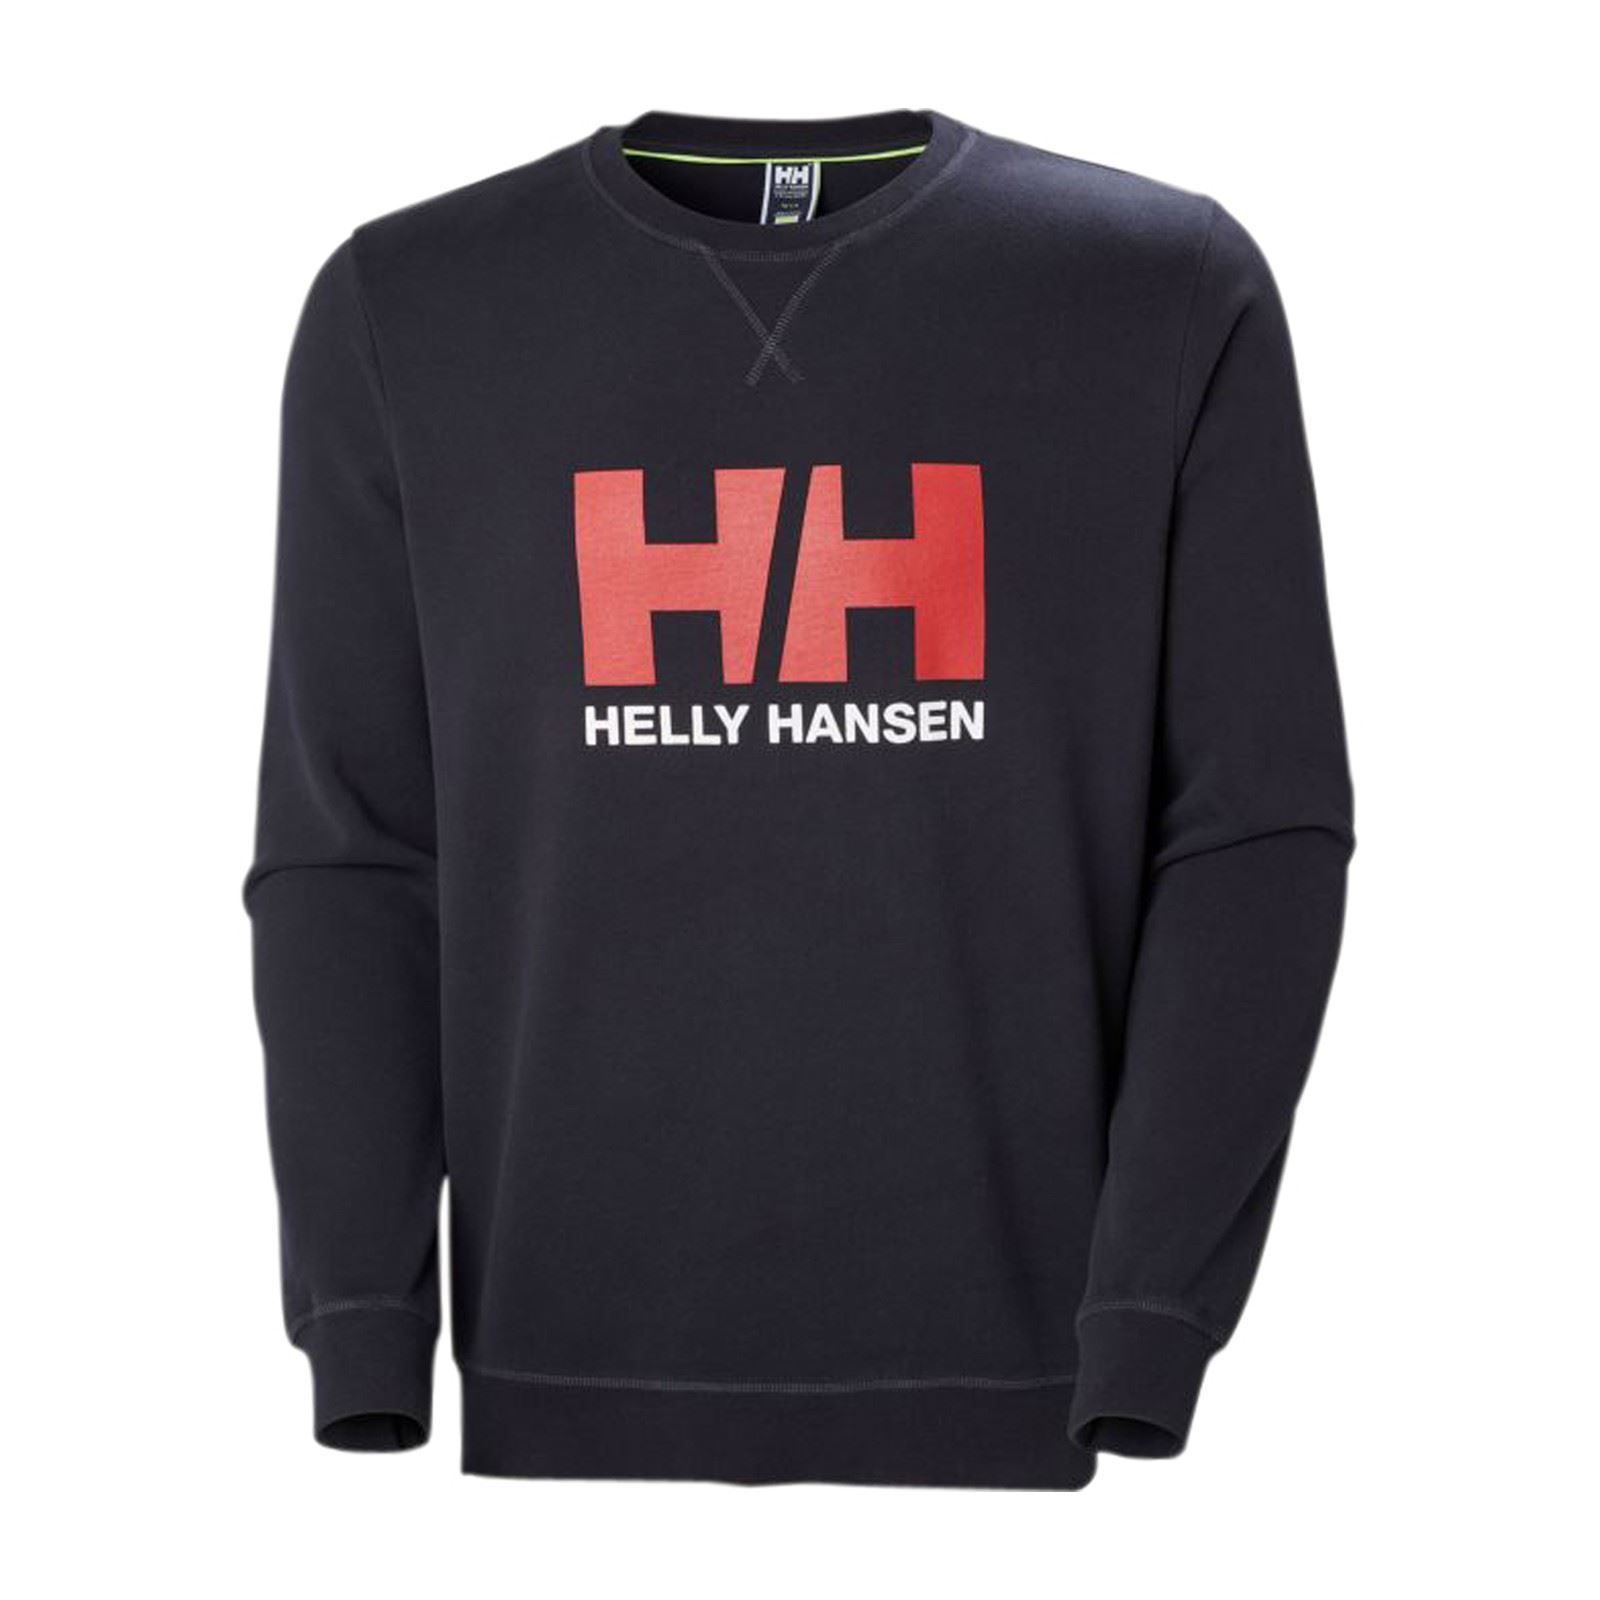 Hansen Bleu Sweat Helly Marine shirt axRWWpn